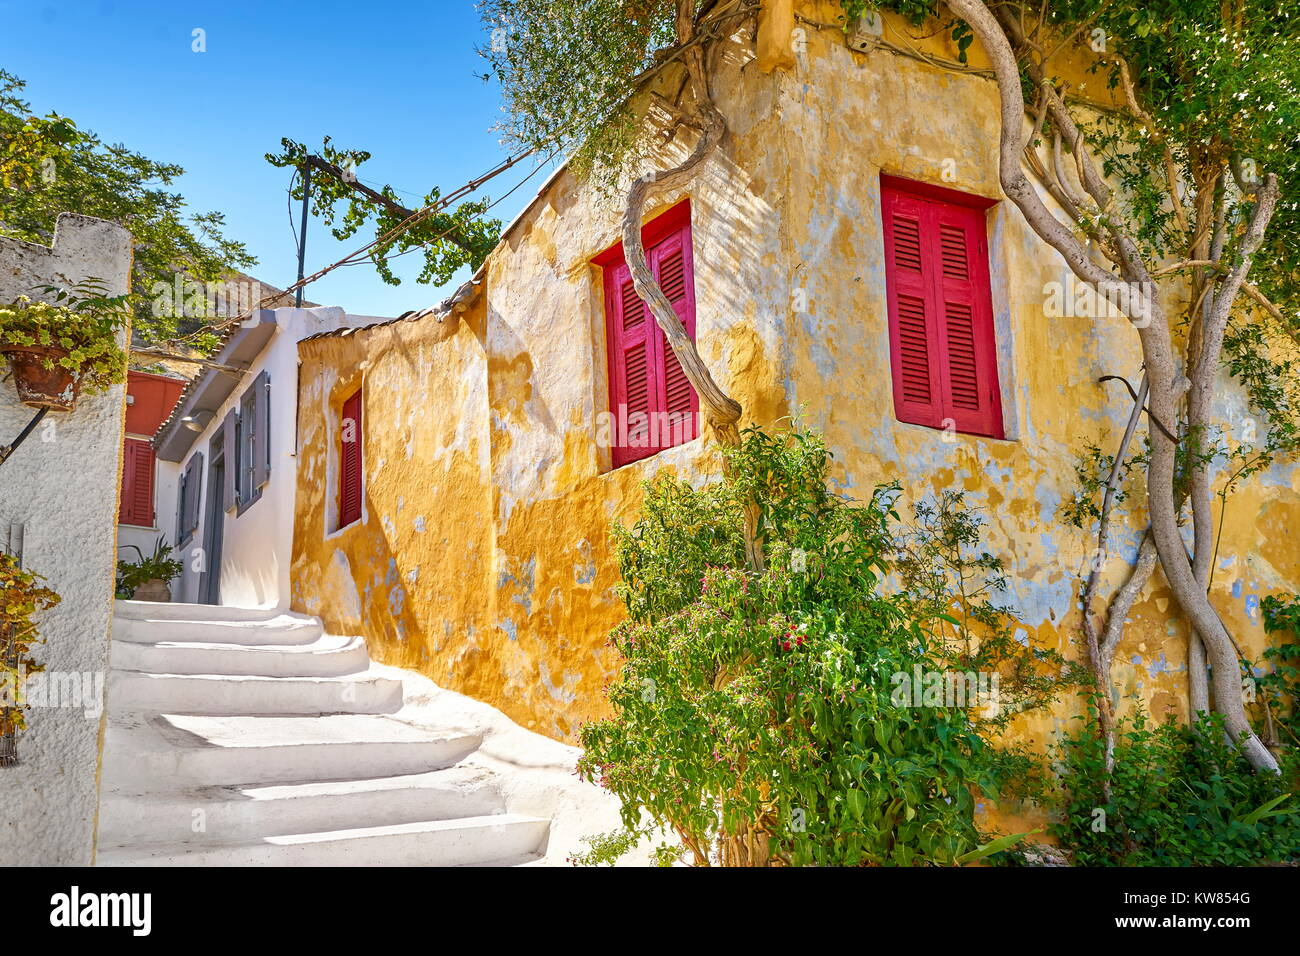 Colorful houses in Anafiotika quarter under the Acropolis, Athens, Greece - Stock Image